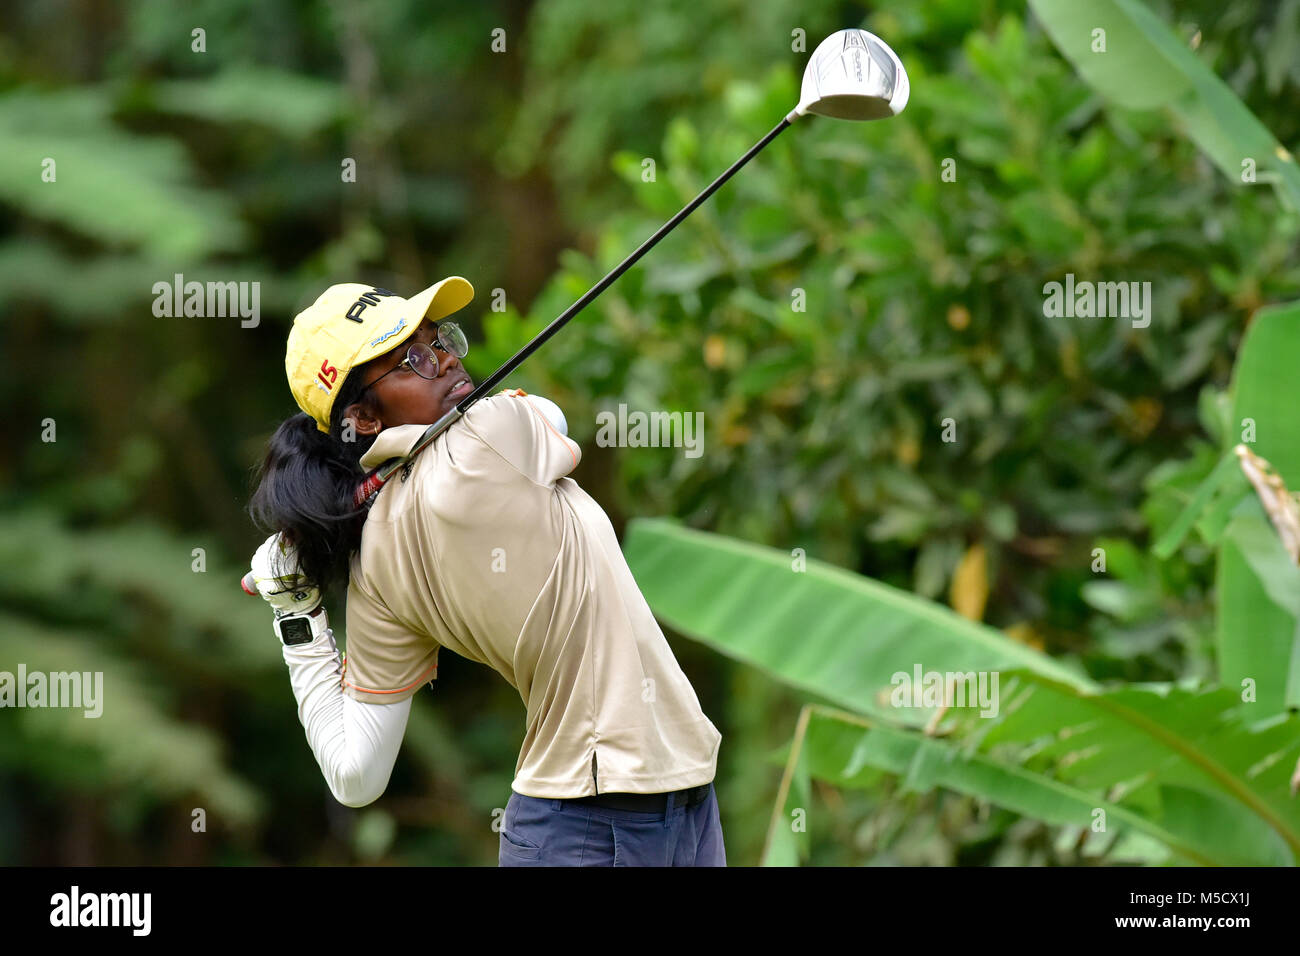 Danau, UKM Bangi - FEBRUARY 10: Hastha Rajendran takes her tee shot on the 11th hole during Round One of the Danau - Stock Image